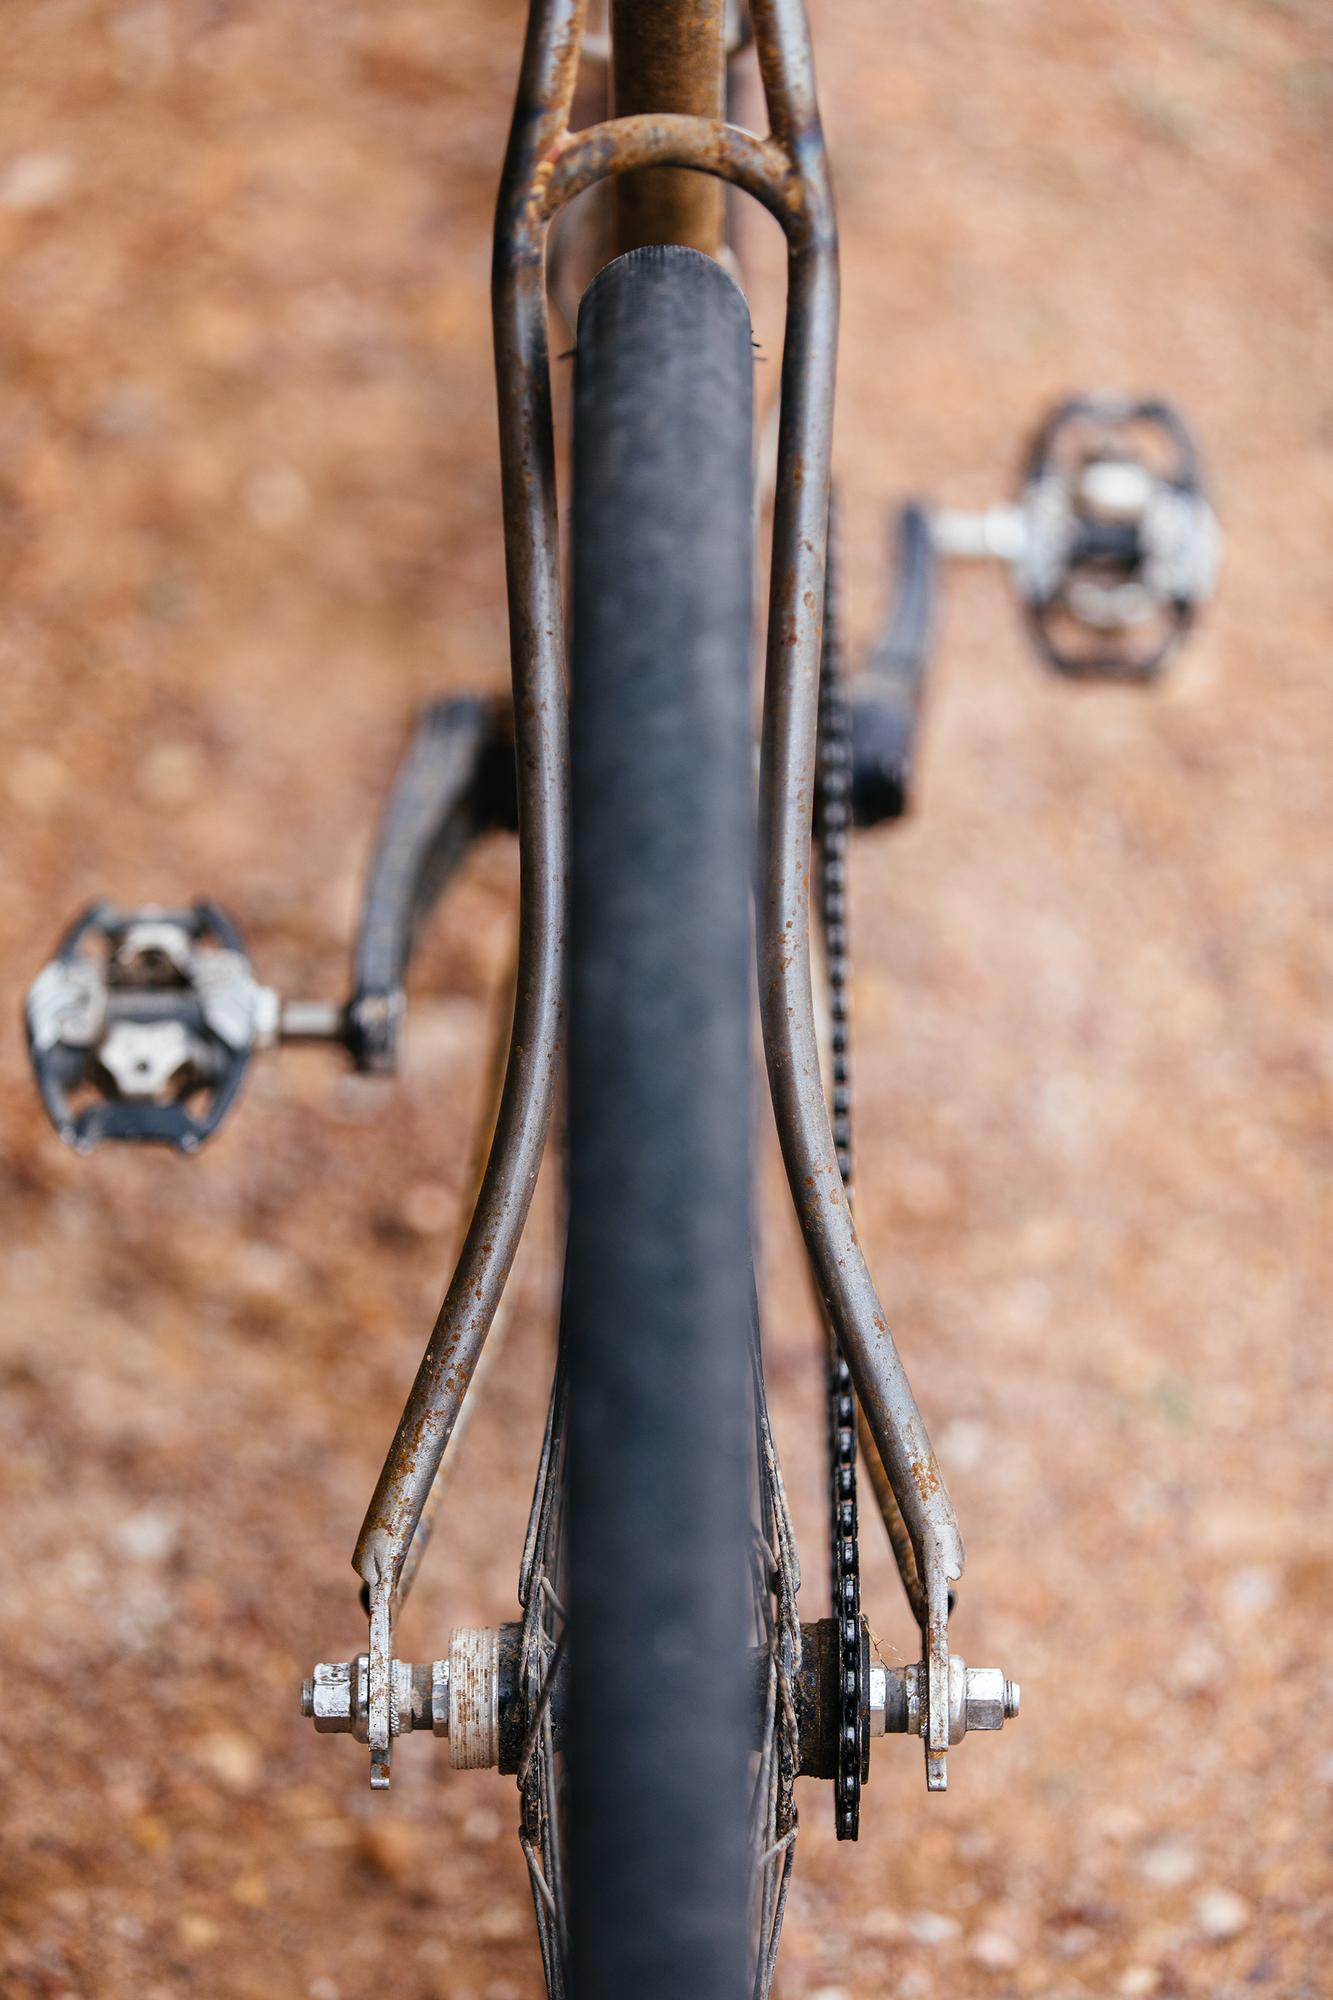 Adam's Sklar Scorcher Gravel Fixed Gear